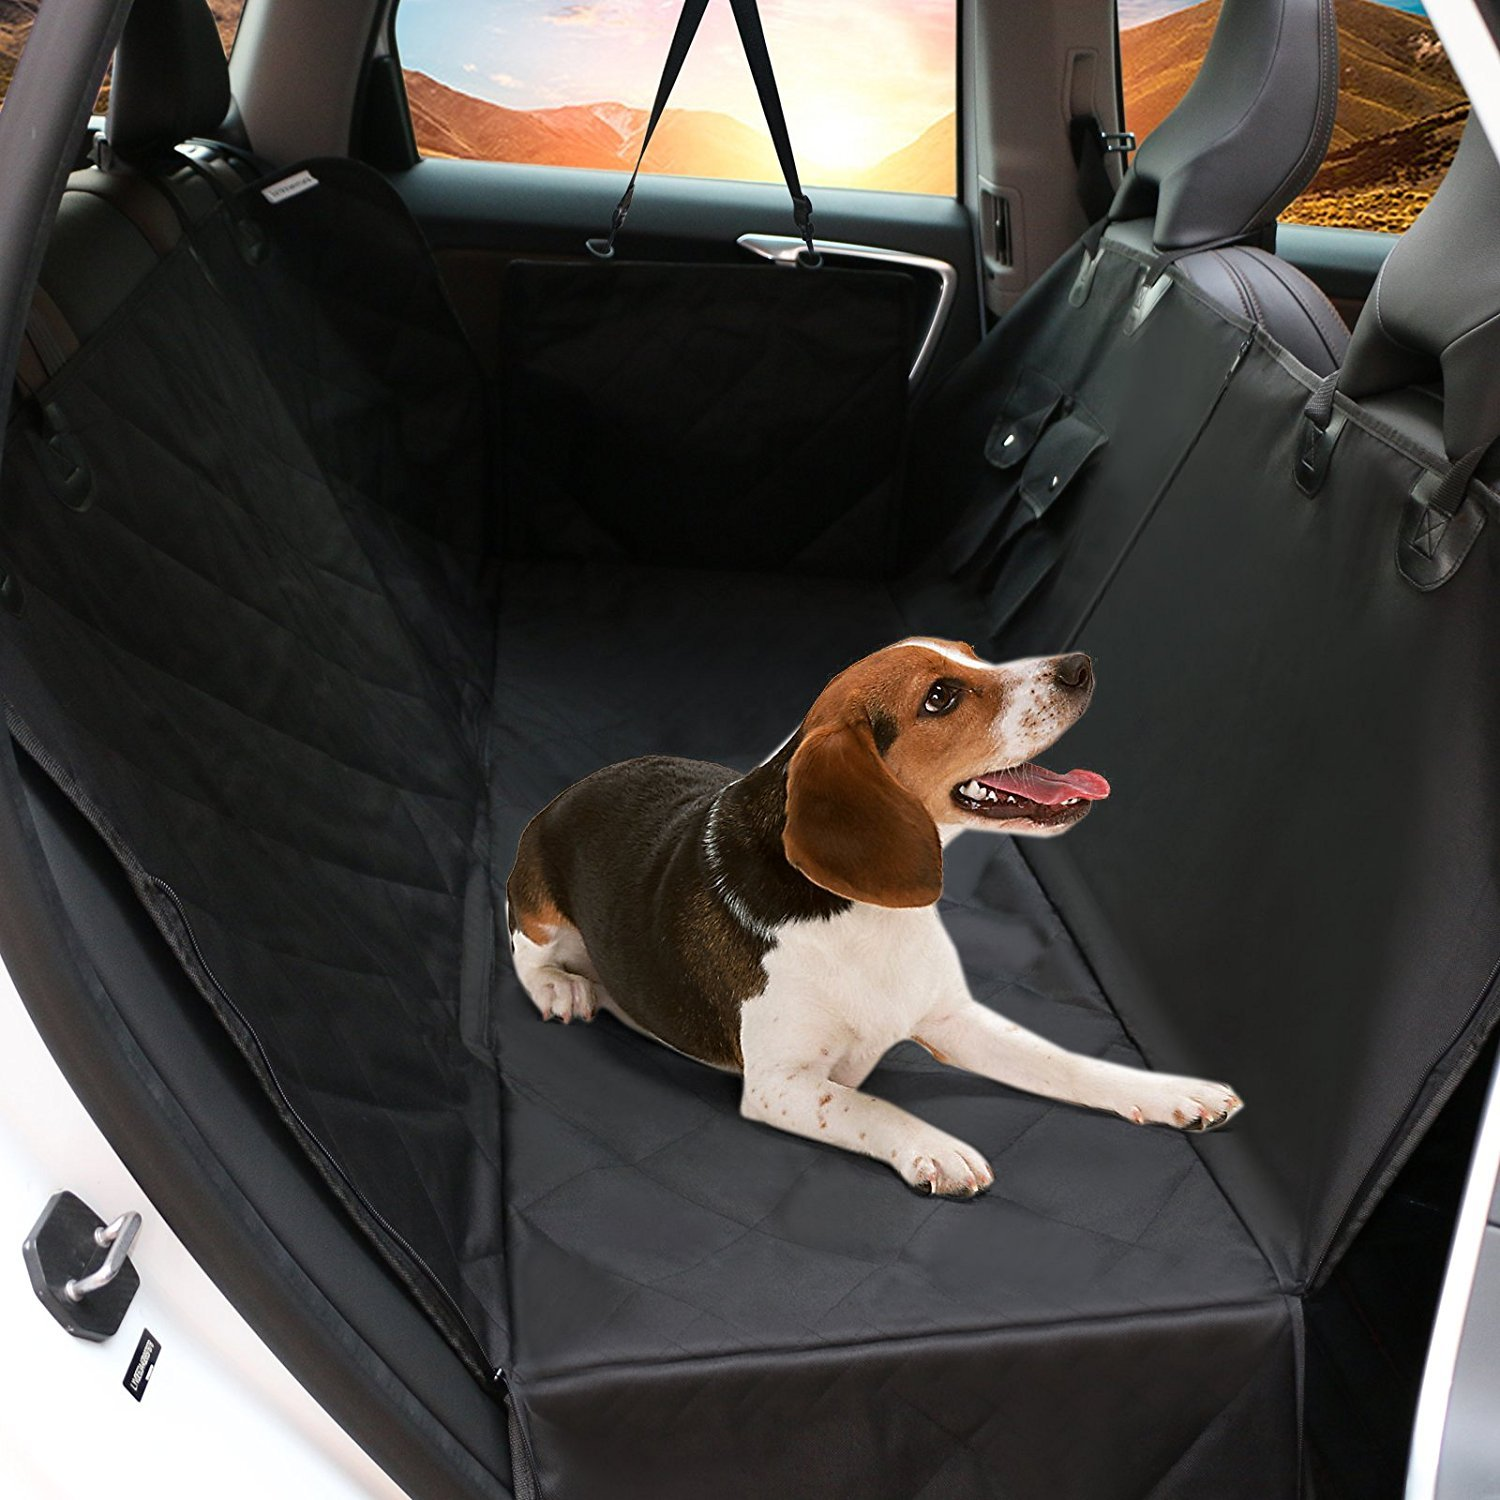 LEMESO Car Seat Cover for Dogs, 600D Scratch Proof Waterproof Pet Seat Covers with Pet Seat Belt, Side Flaps, Nonslip Backing for Cars SUV Truck